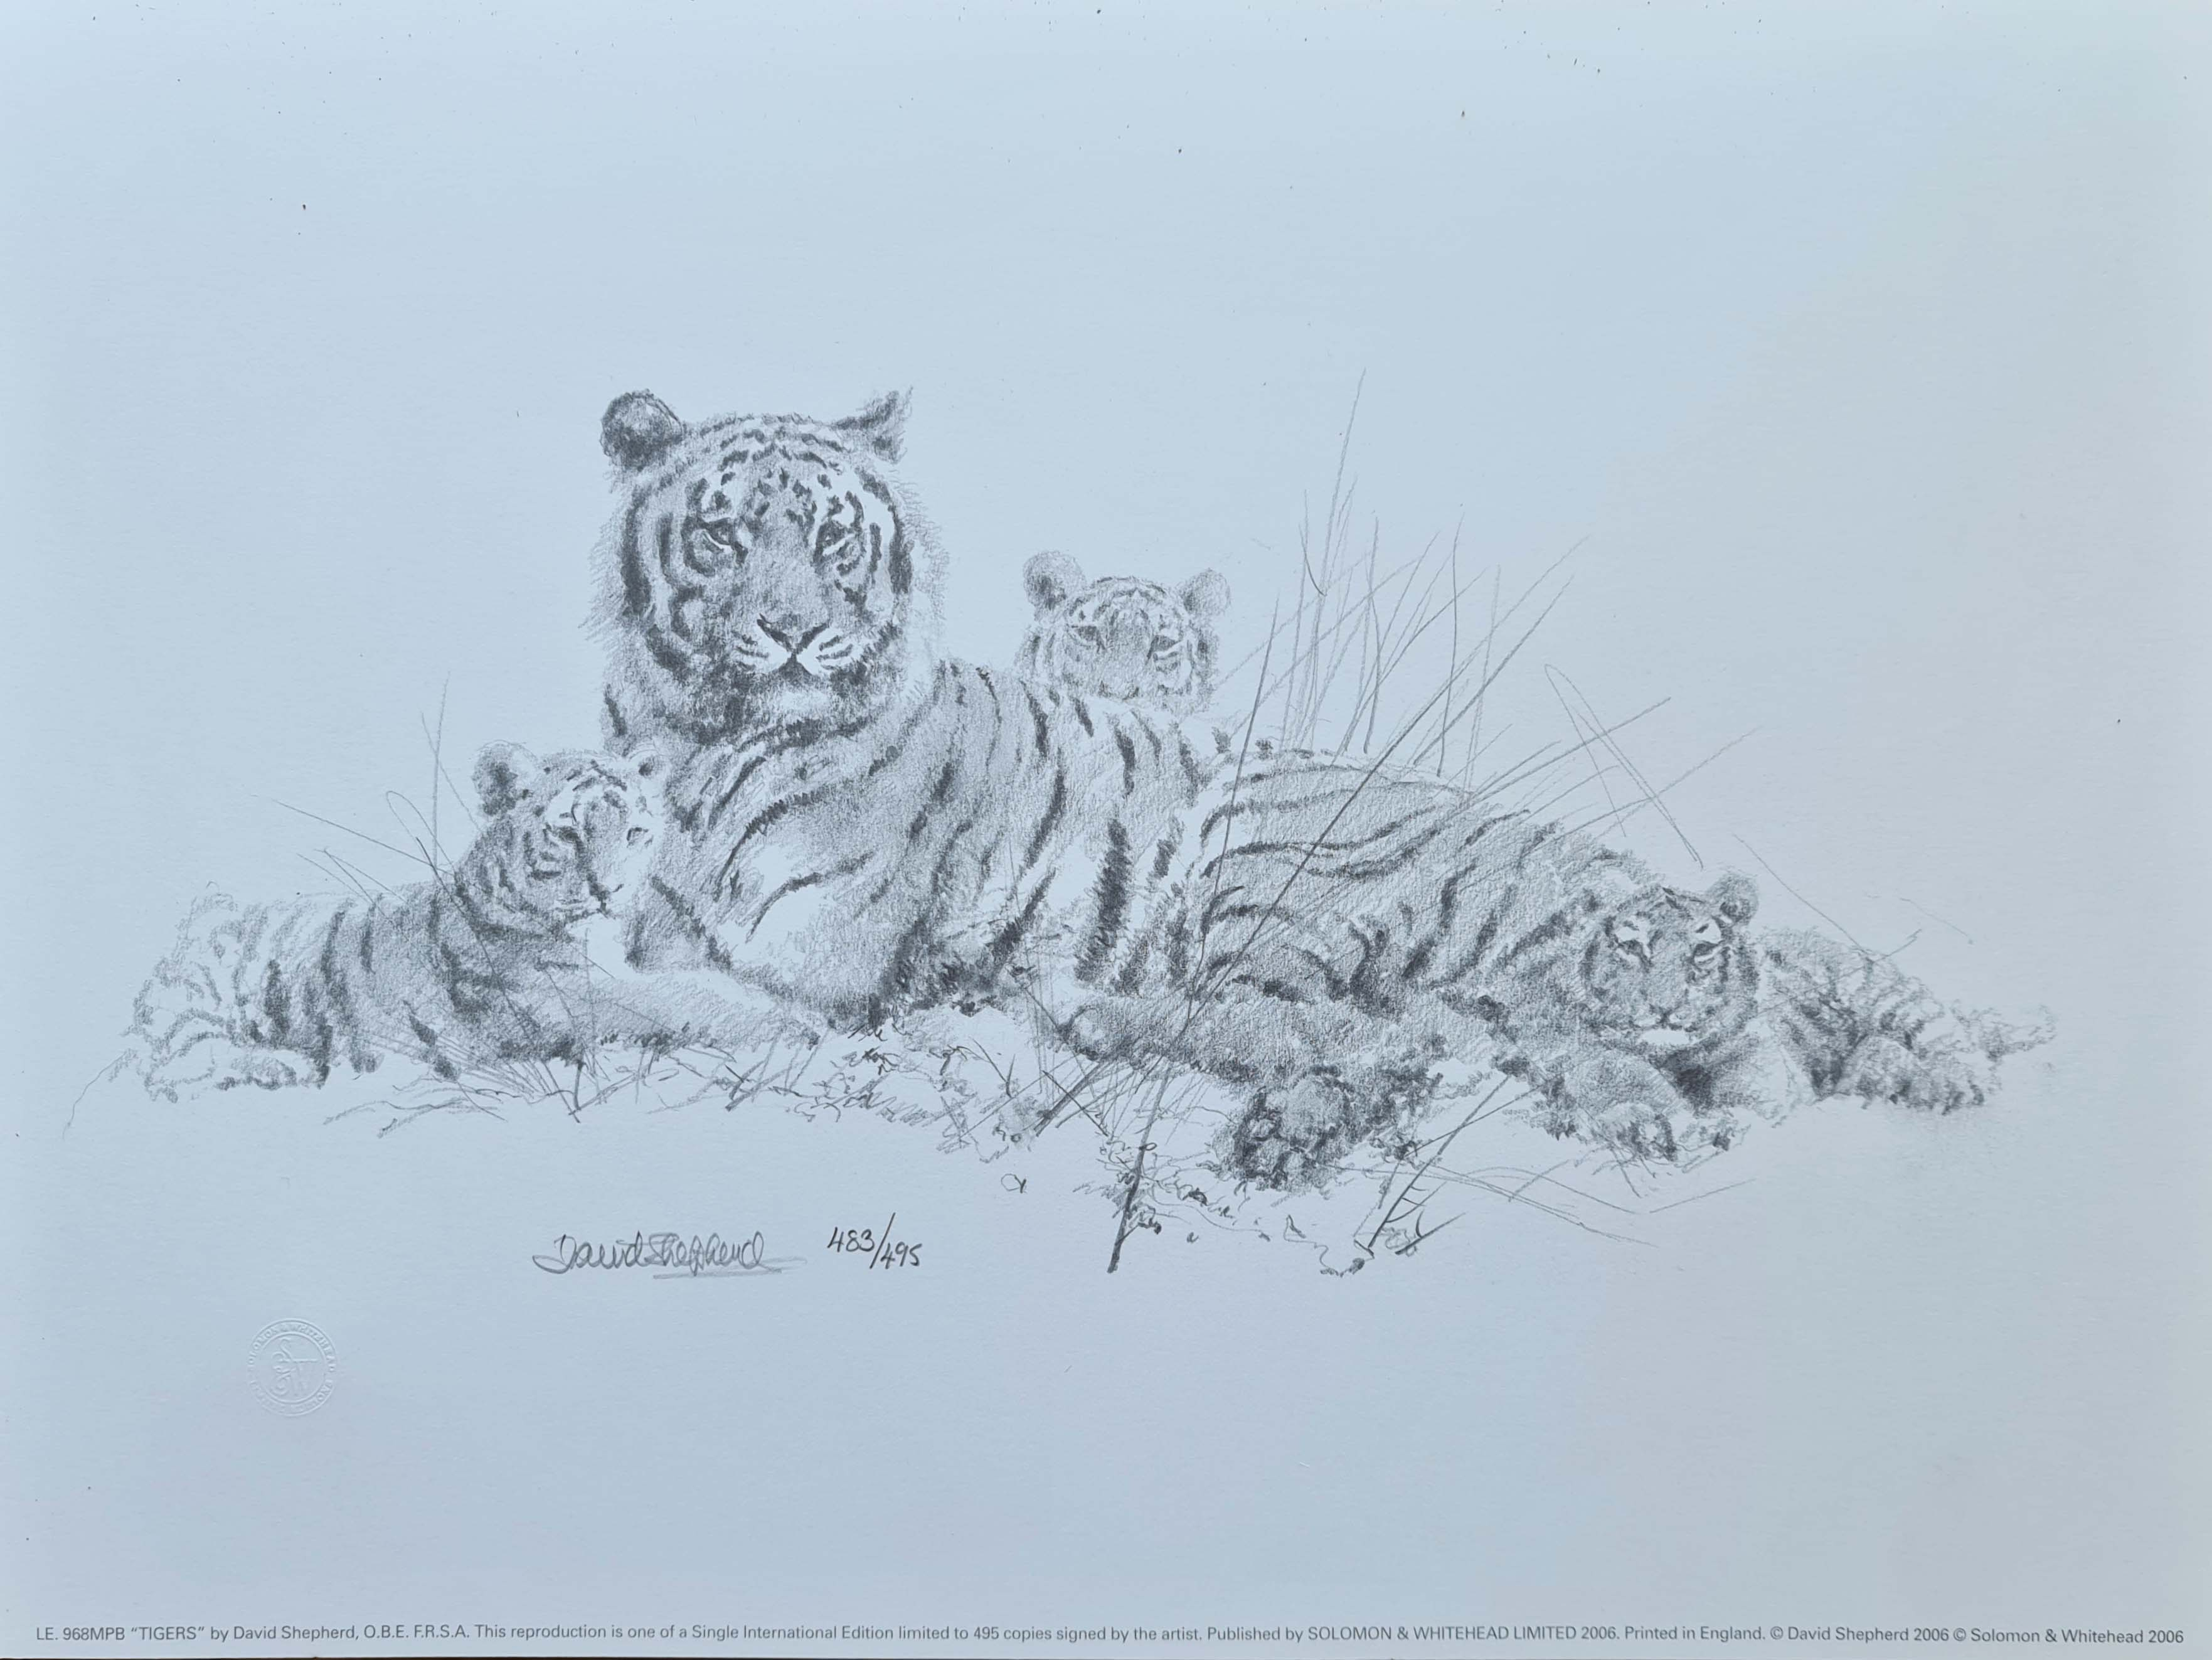 david shepherd Tiger sketch